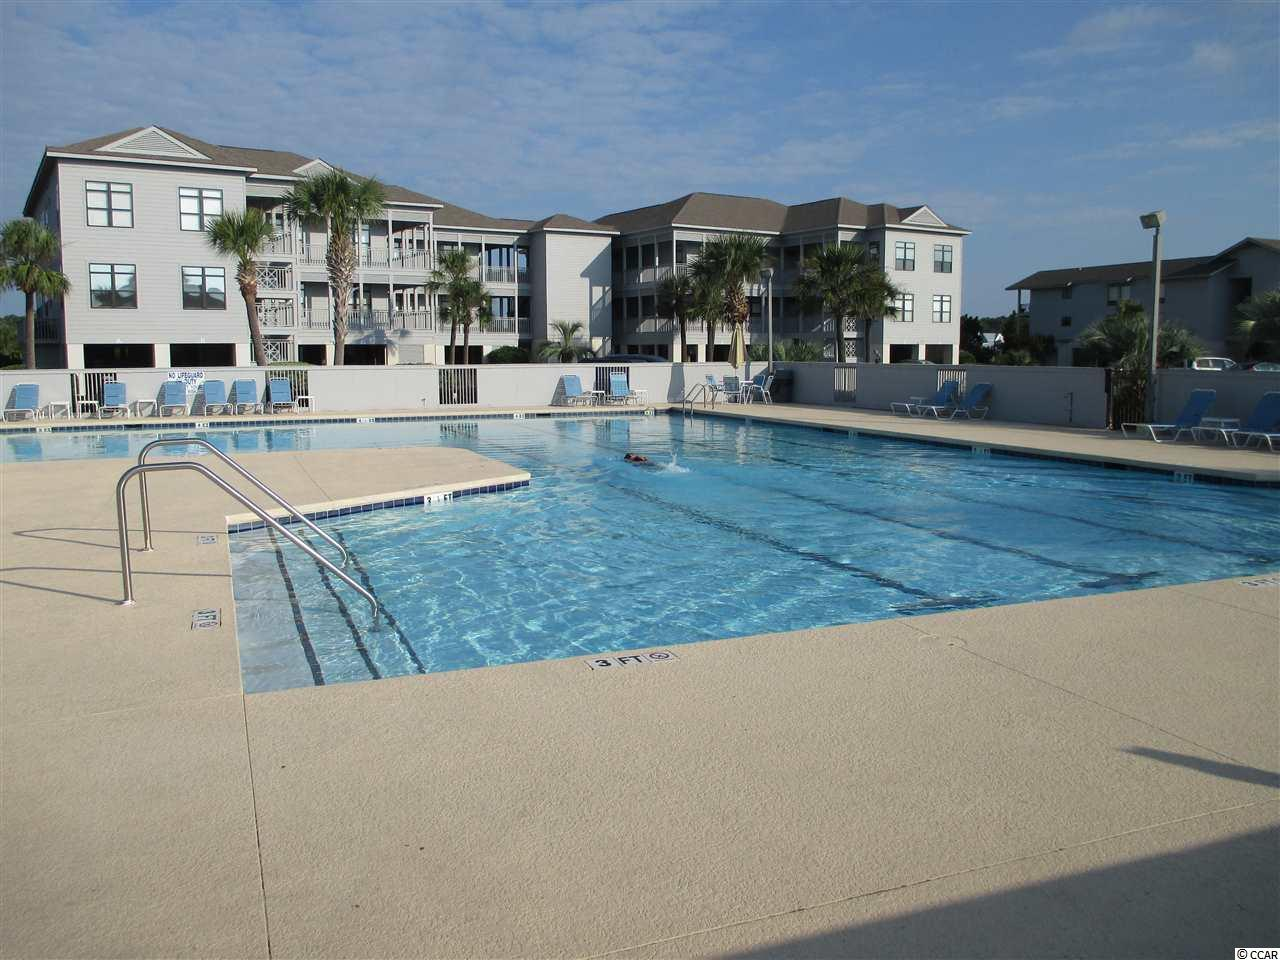 Contact your real estate agent to view this  21 condo for sale